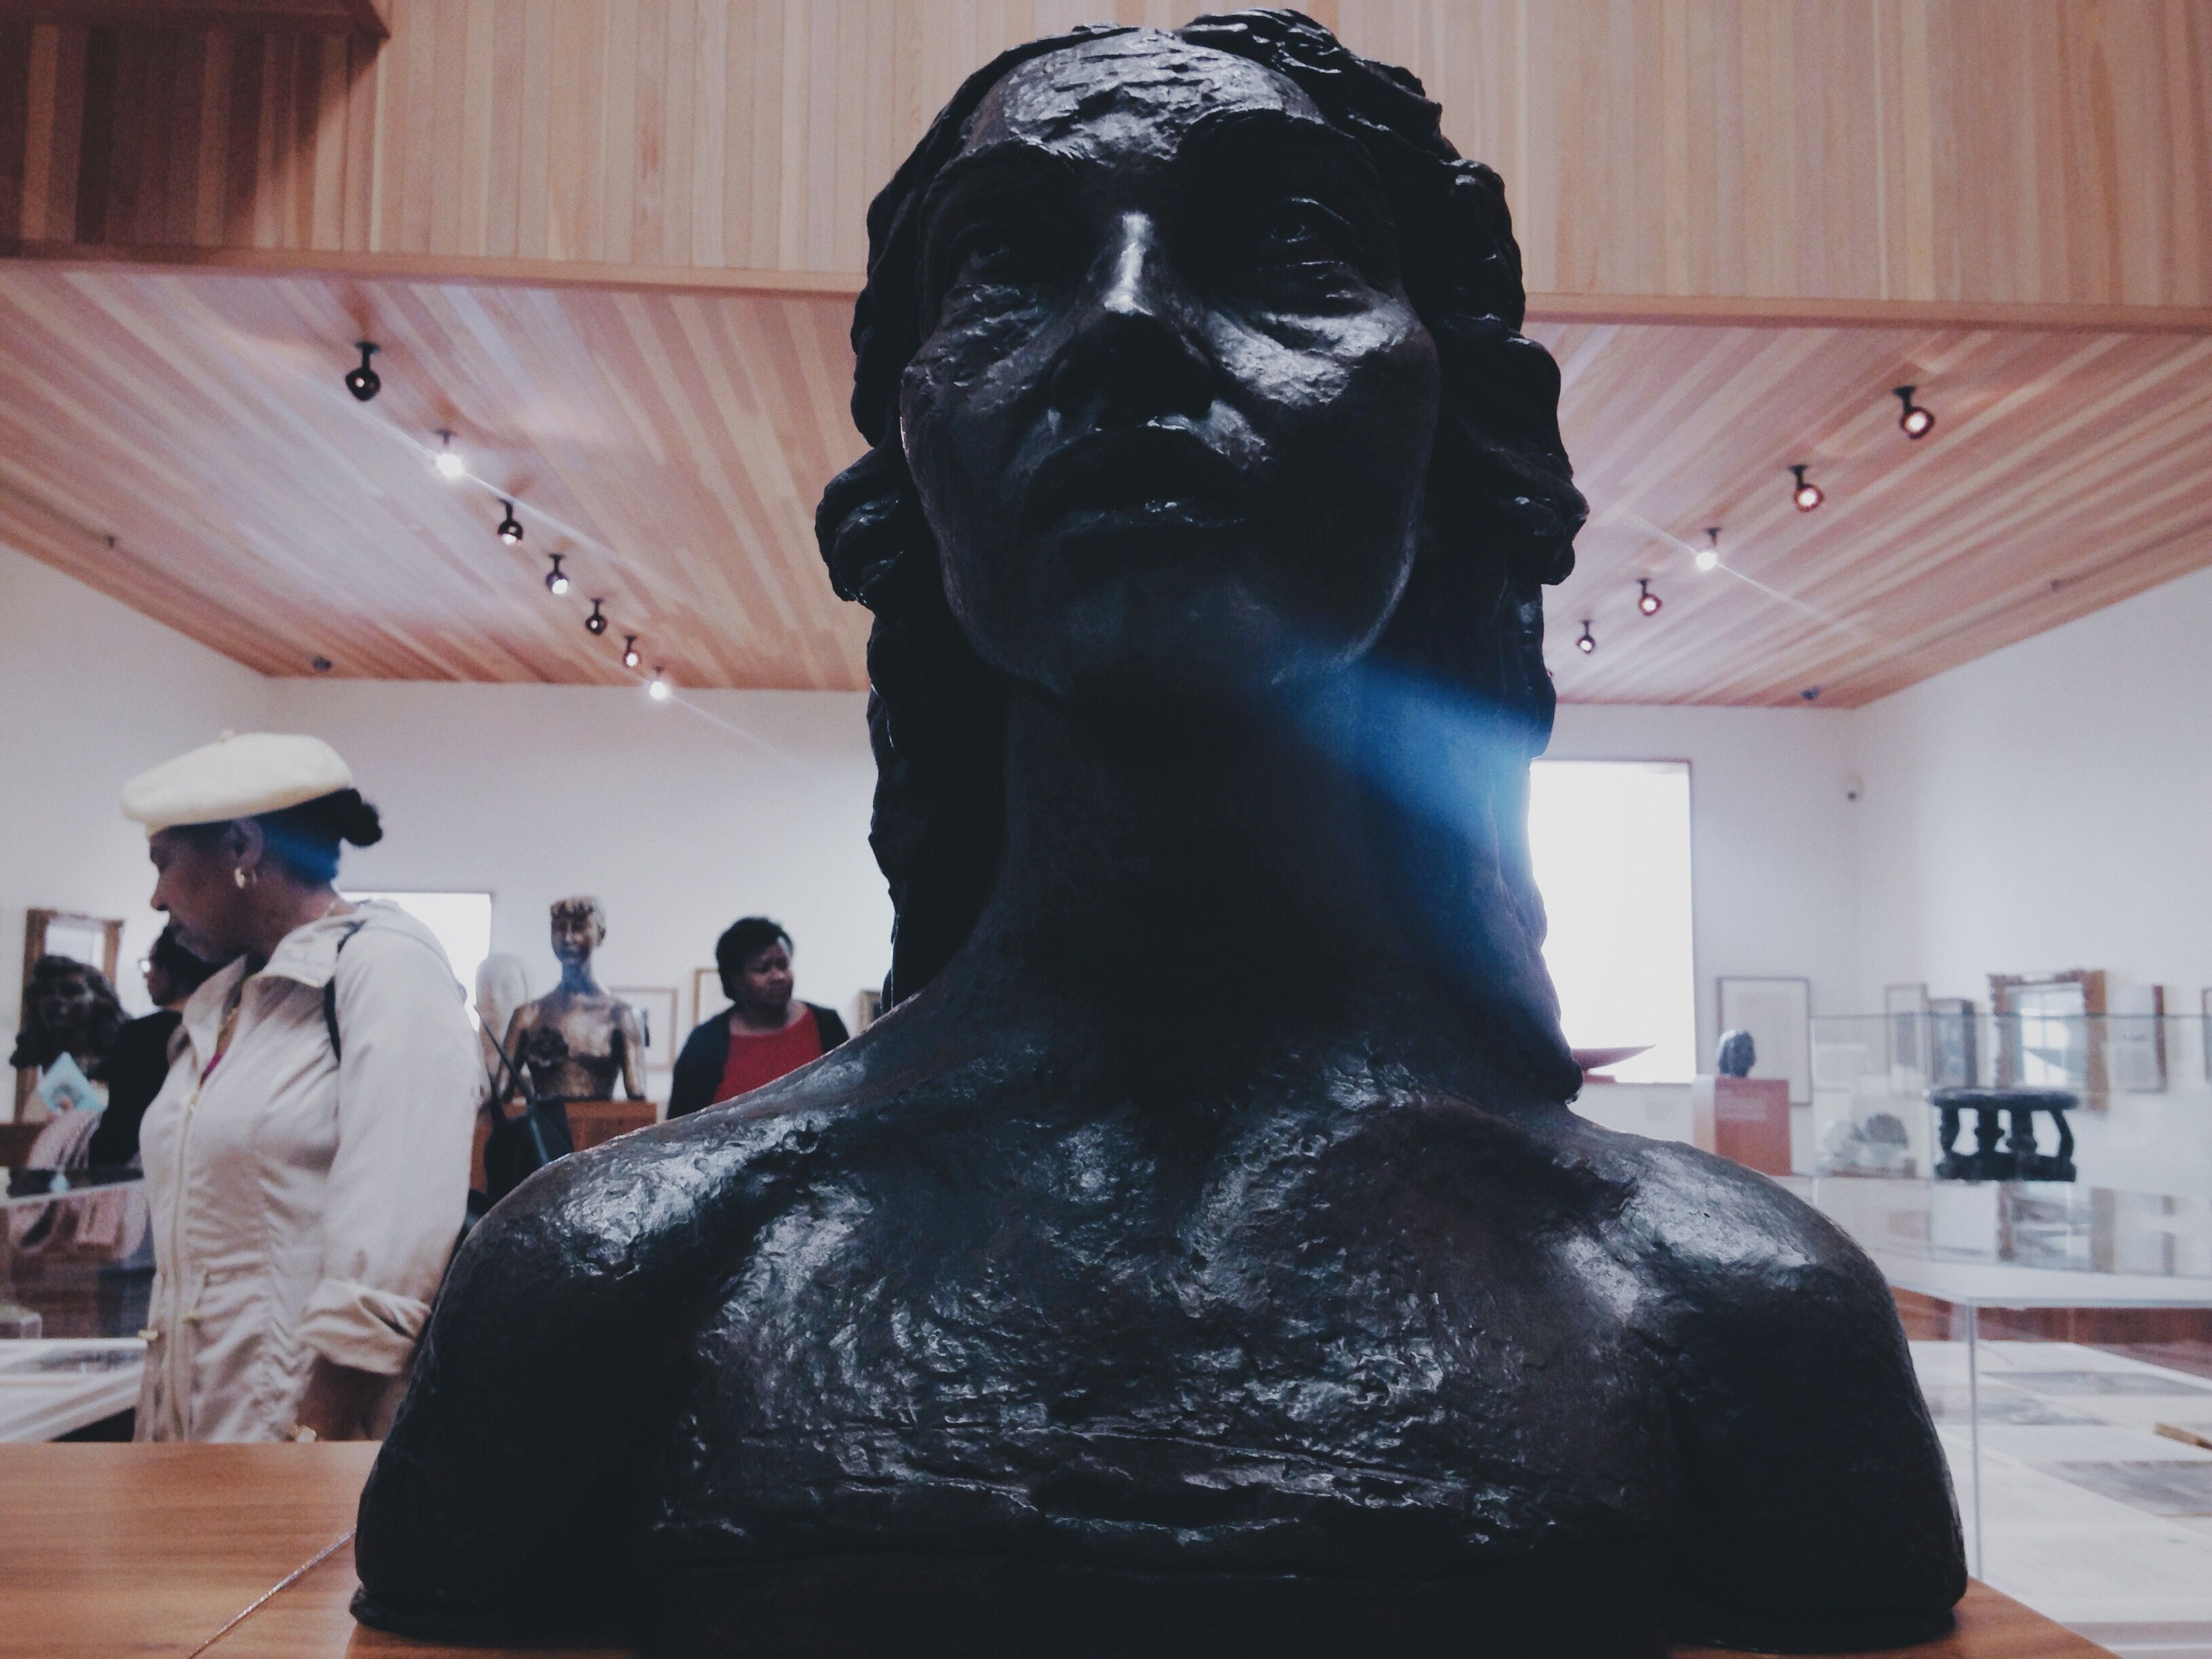 A Photograph of a Sculpture in The Walsall Museum